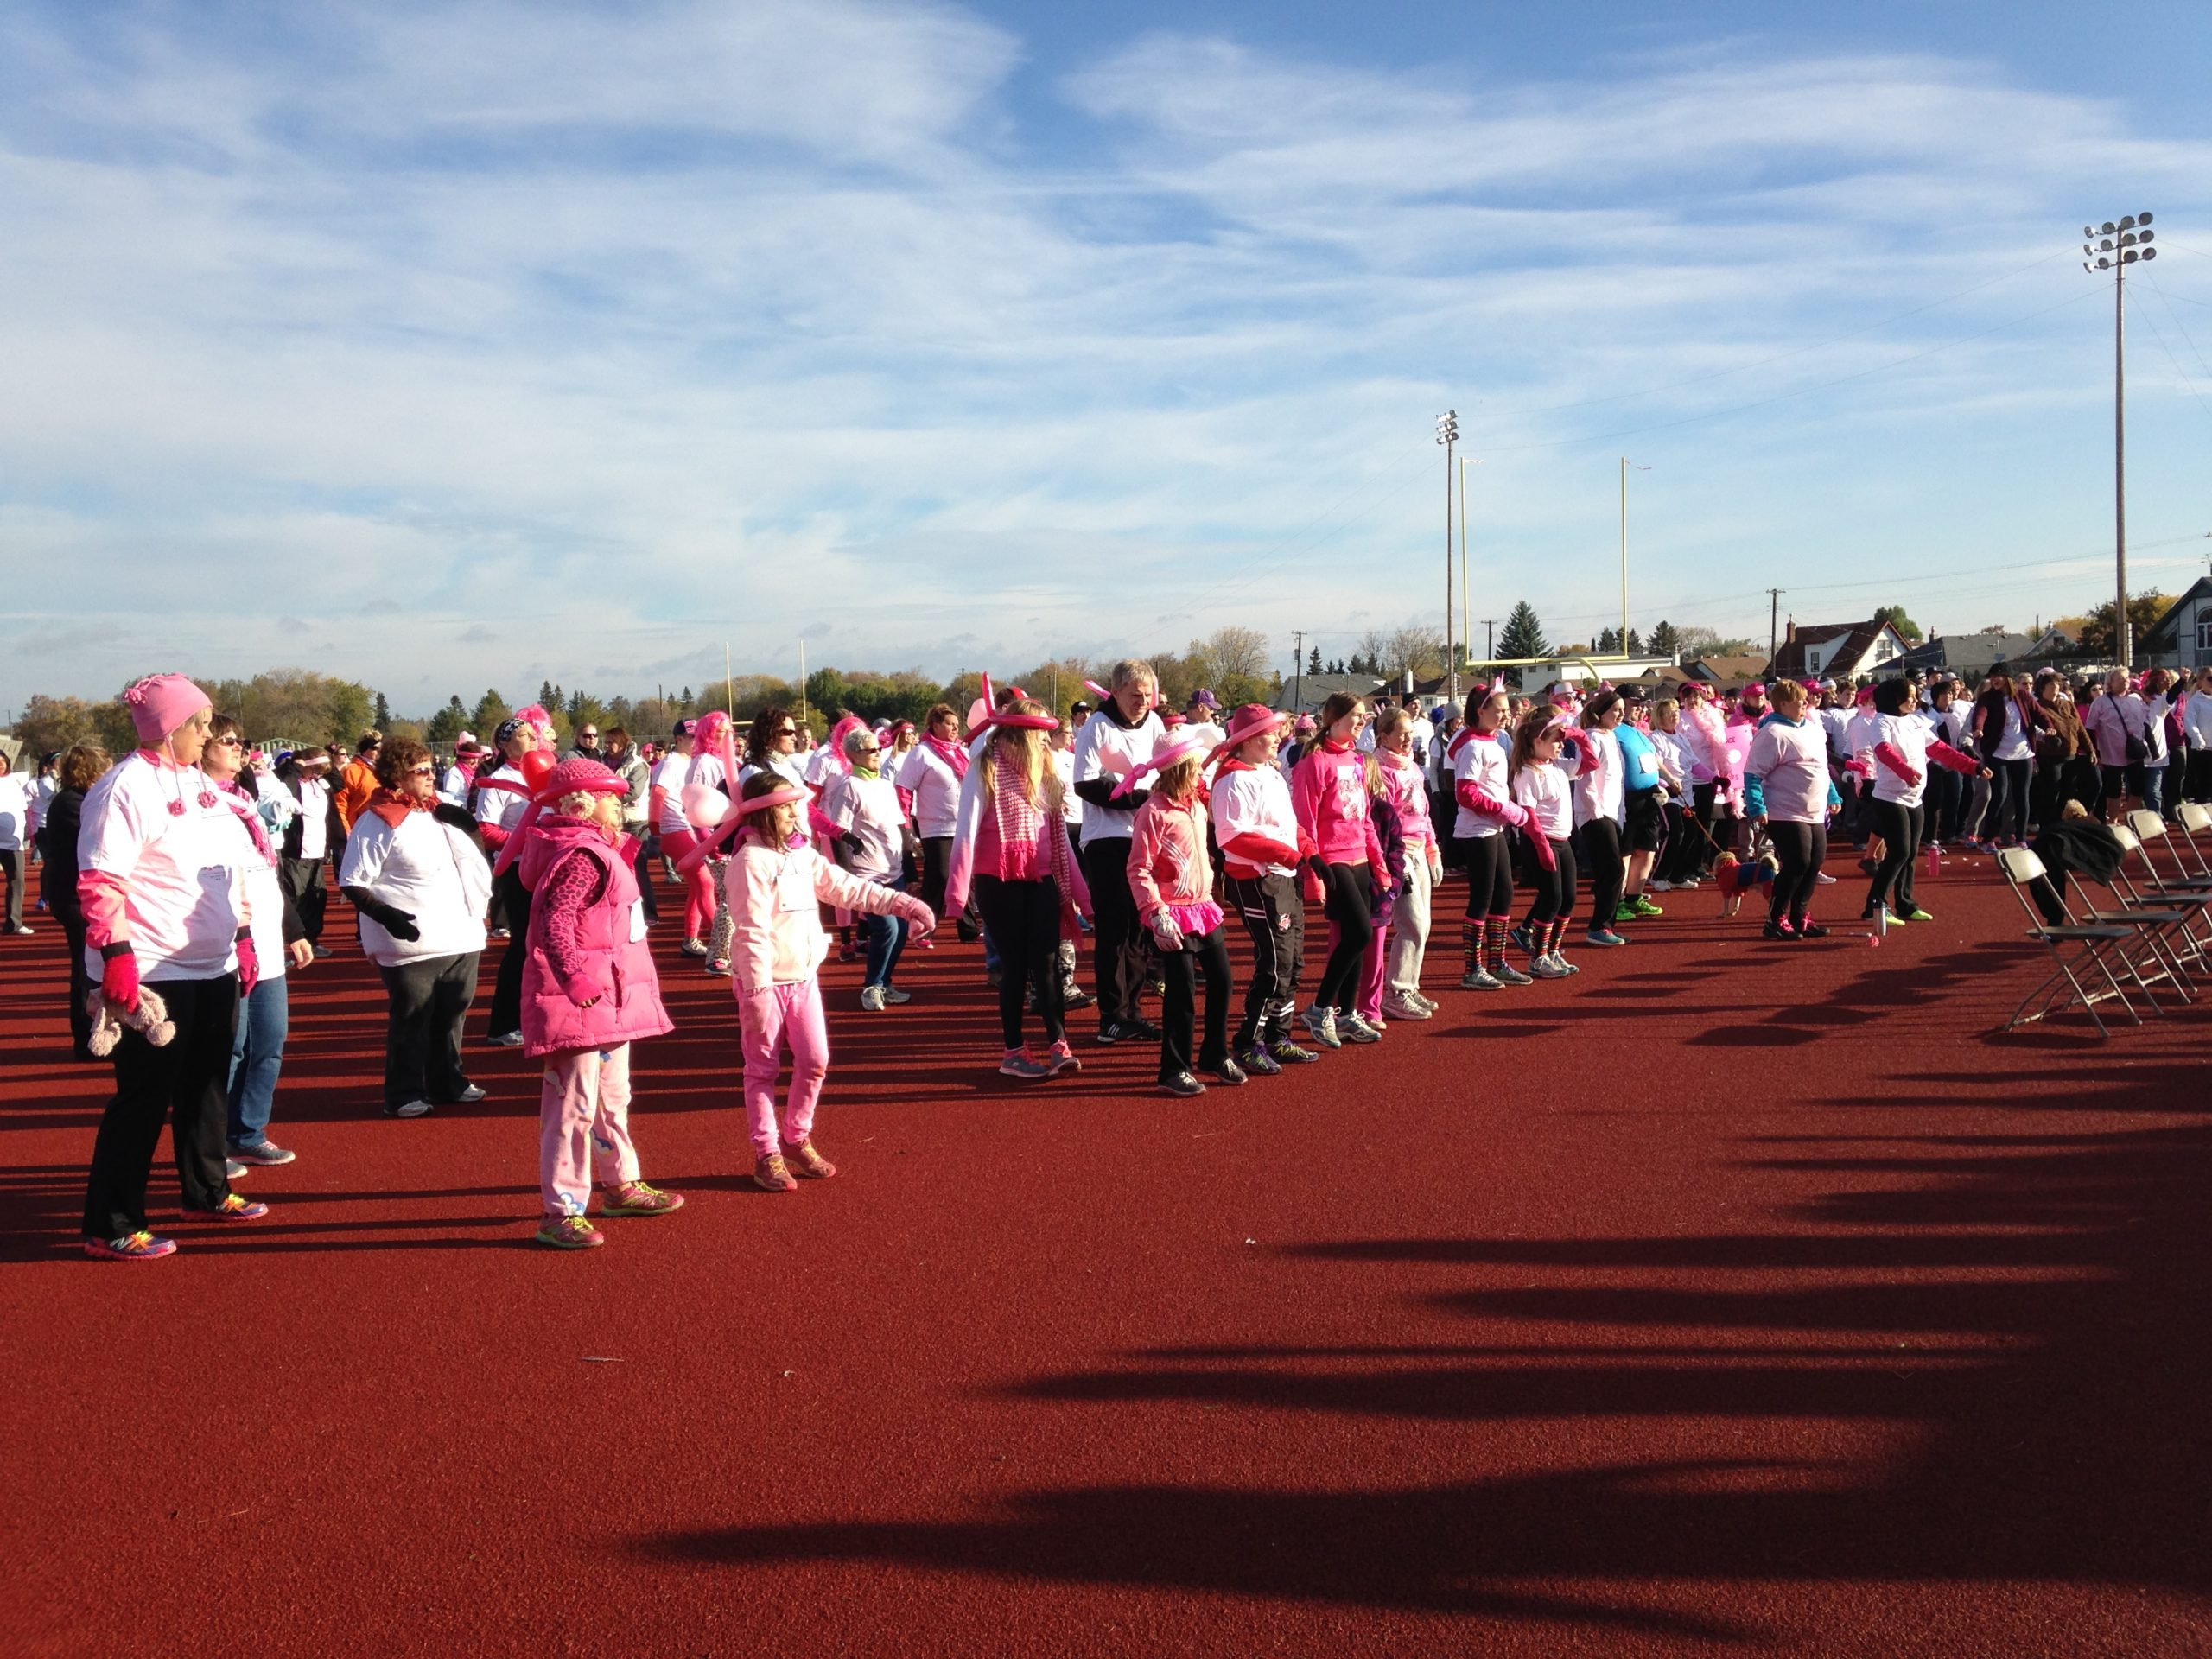 500 Expected To Run For The Cure